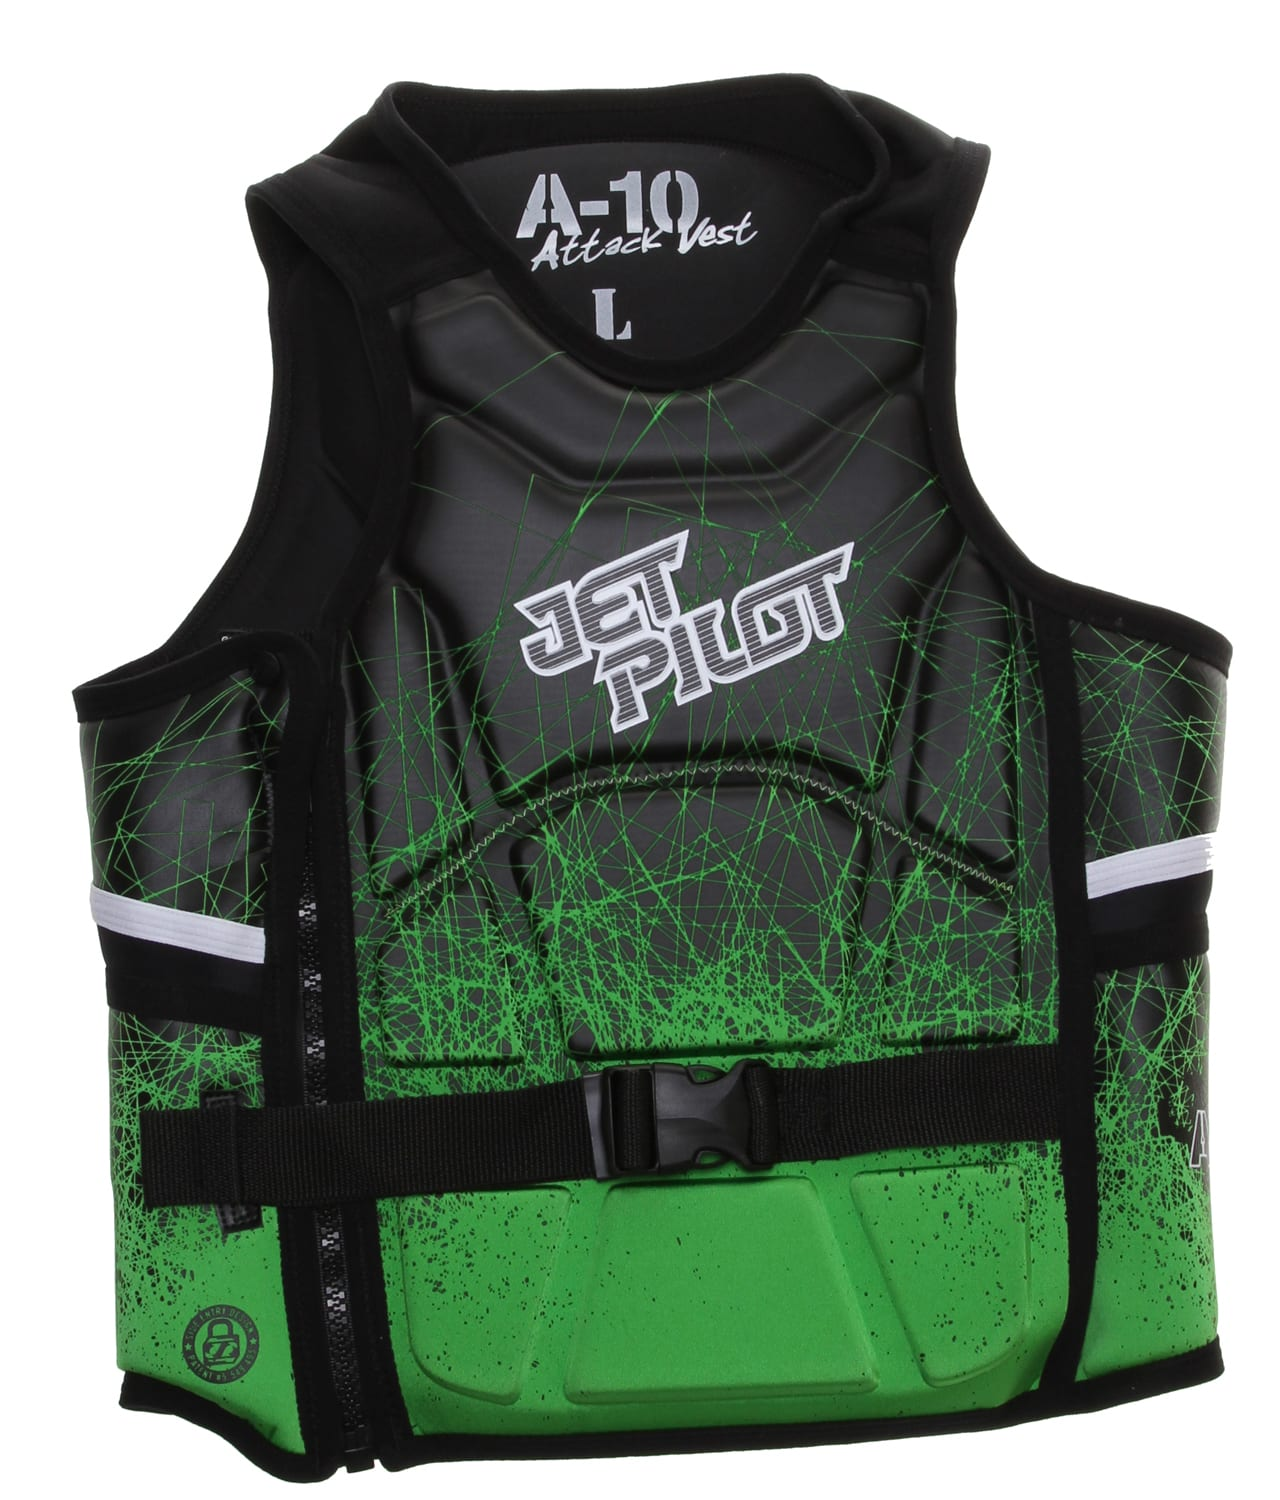 Shop for Jet Pilot A-10 Comp Wakeboard Vest Green - Men's